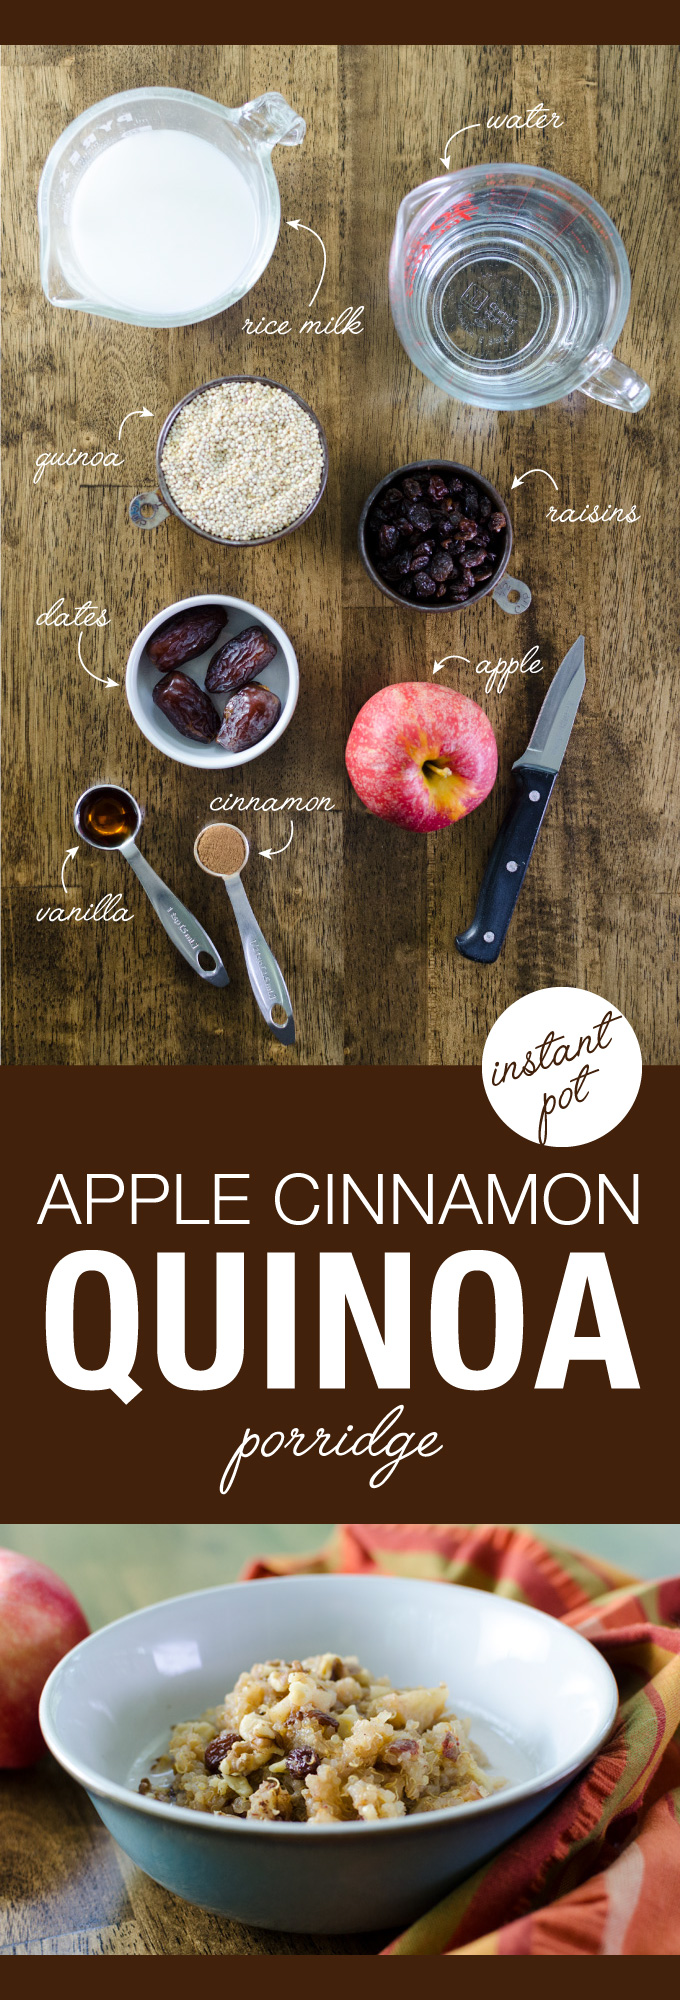 Instant Pot Apple Cinnamon Quinoa Porridge - delicious vegan and gluten-free recipe